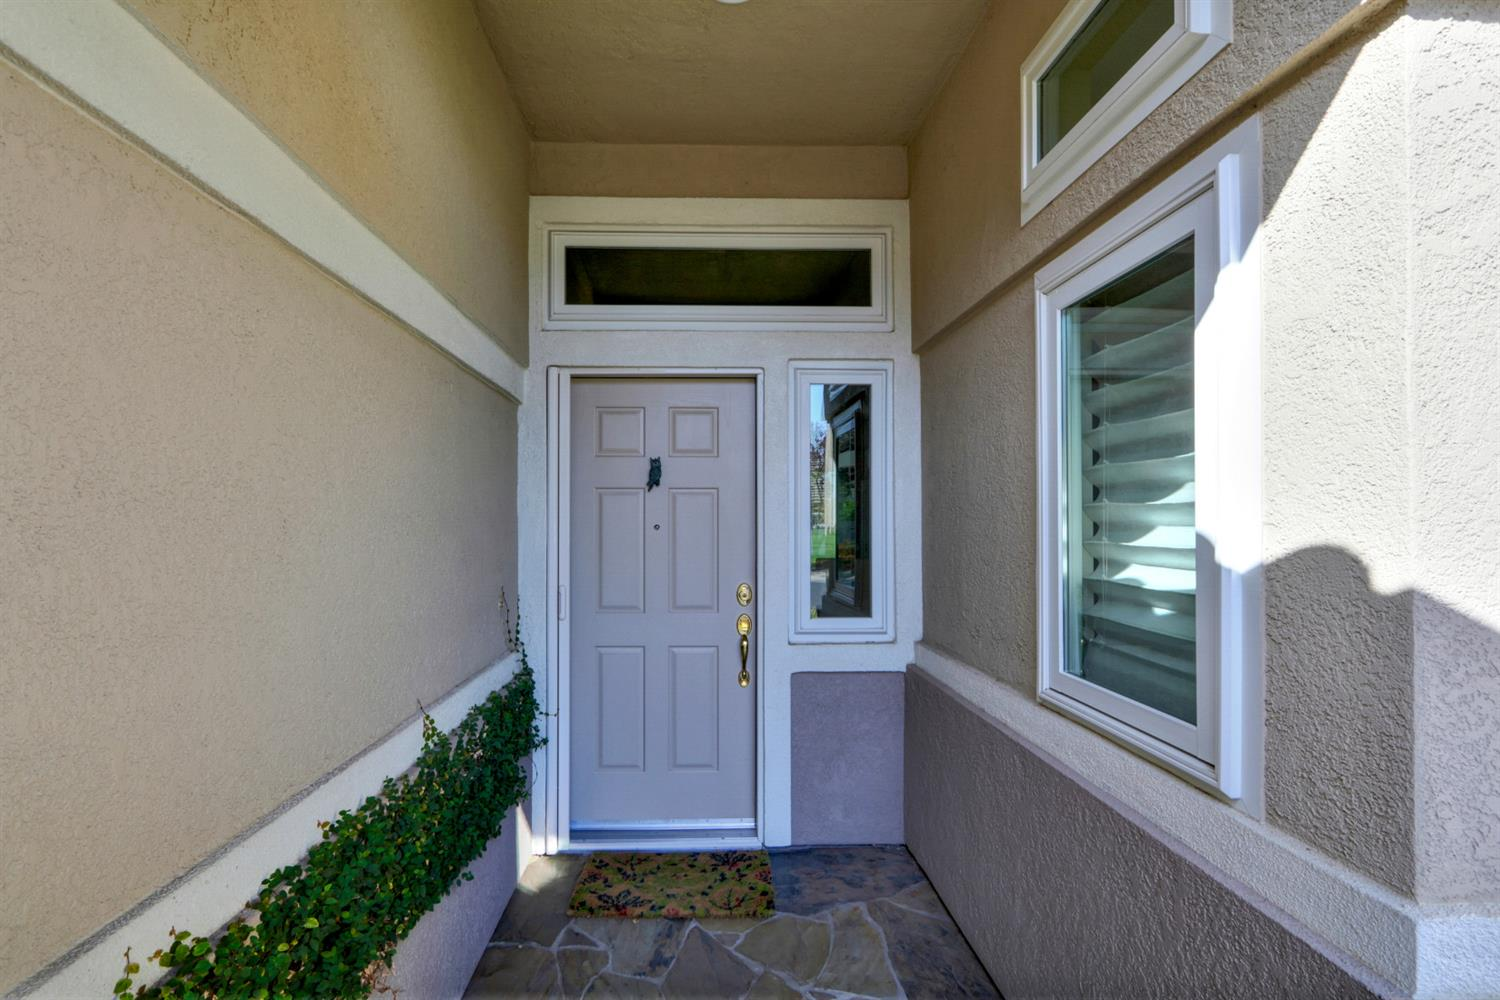 Photo 3 for Listing #221084560